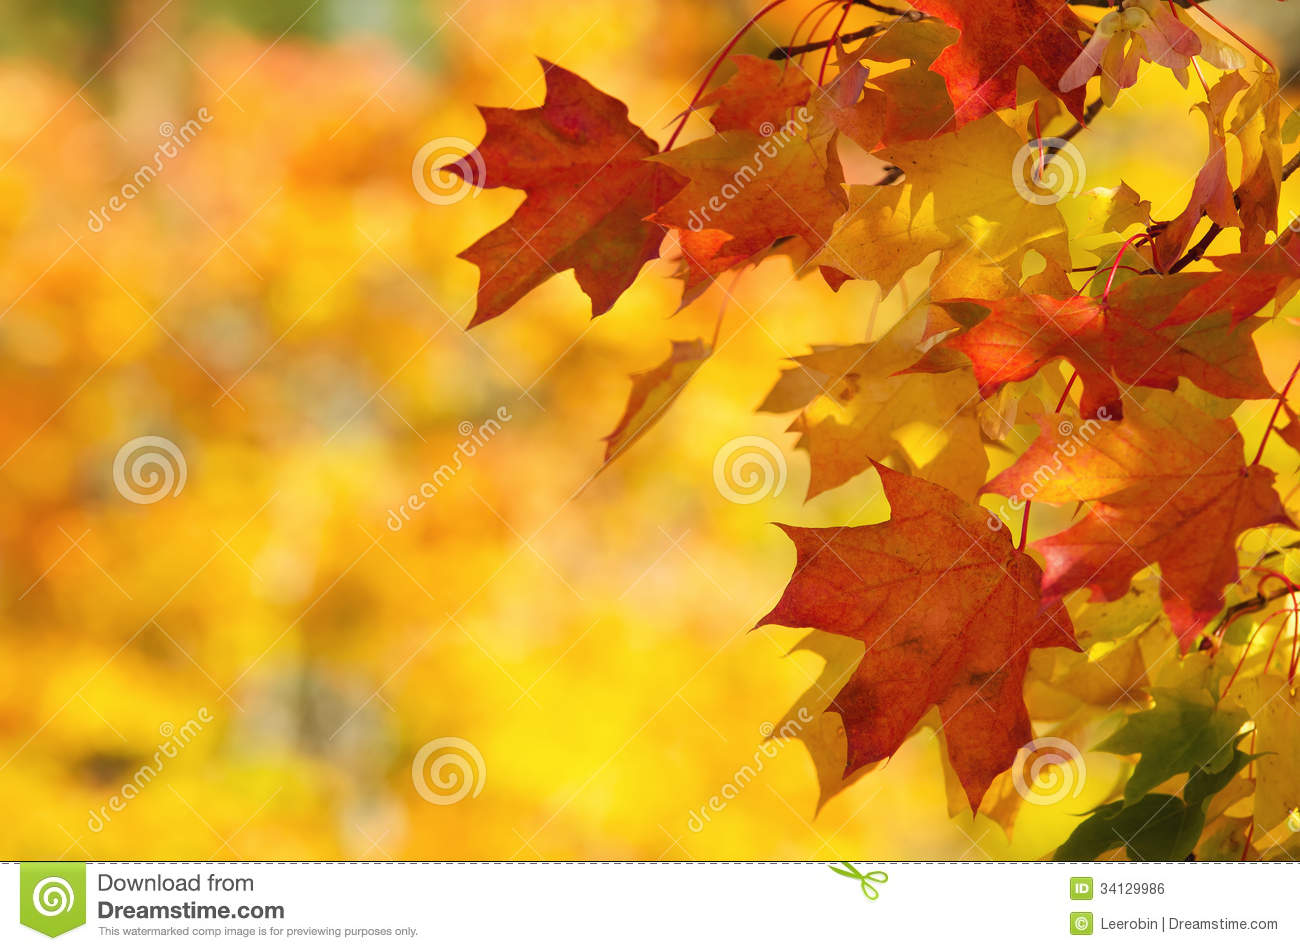 Fall Season Computer Wallpaper Autumn Leaves On Tree Branch Royalty Free Stock Image